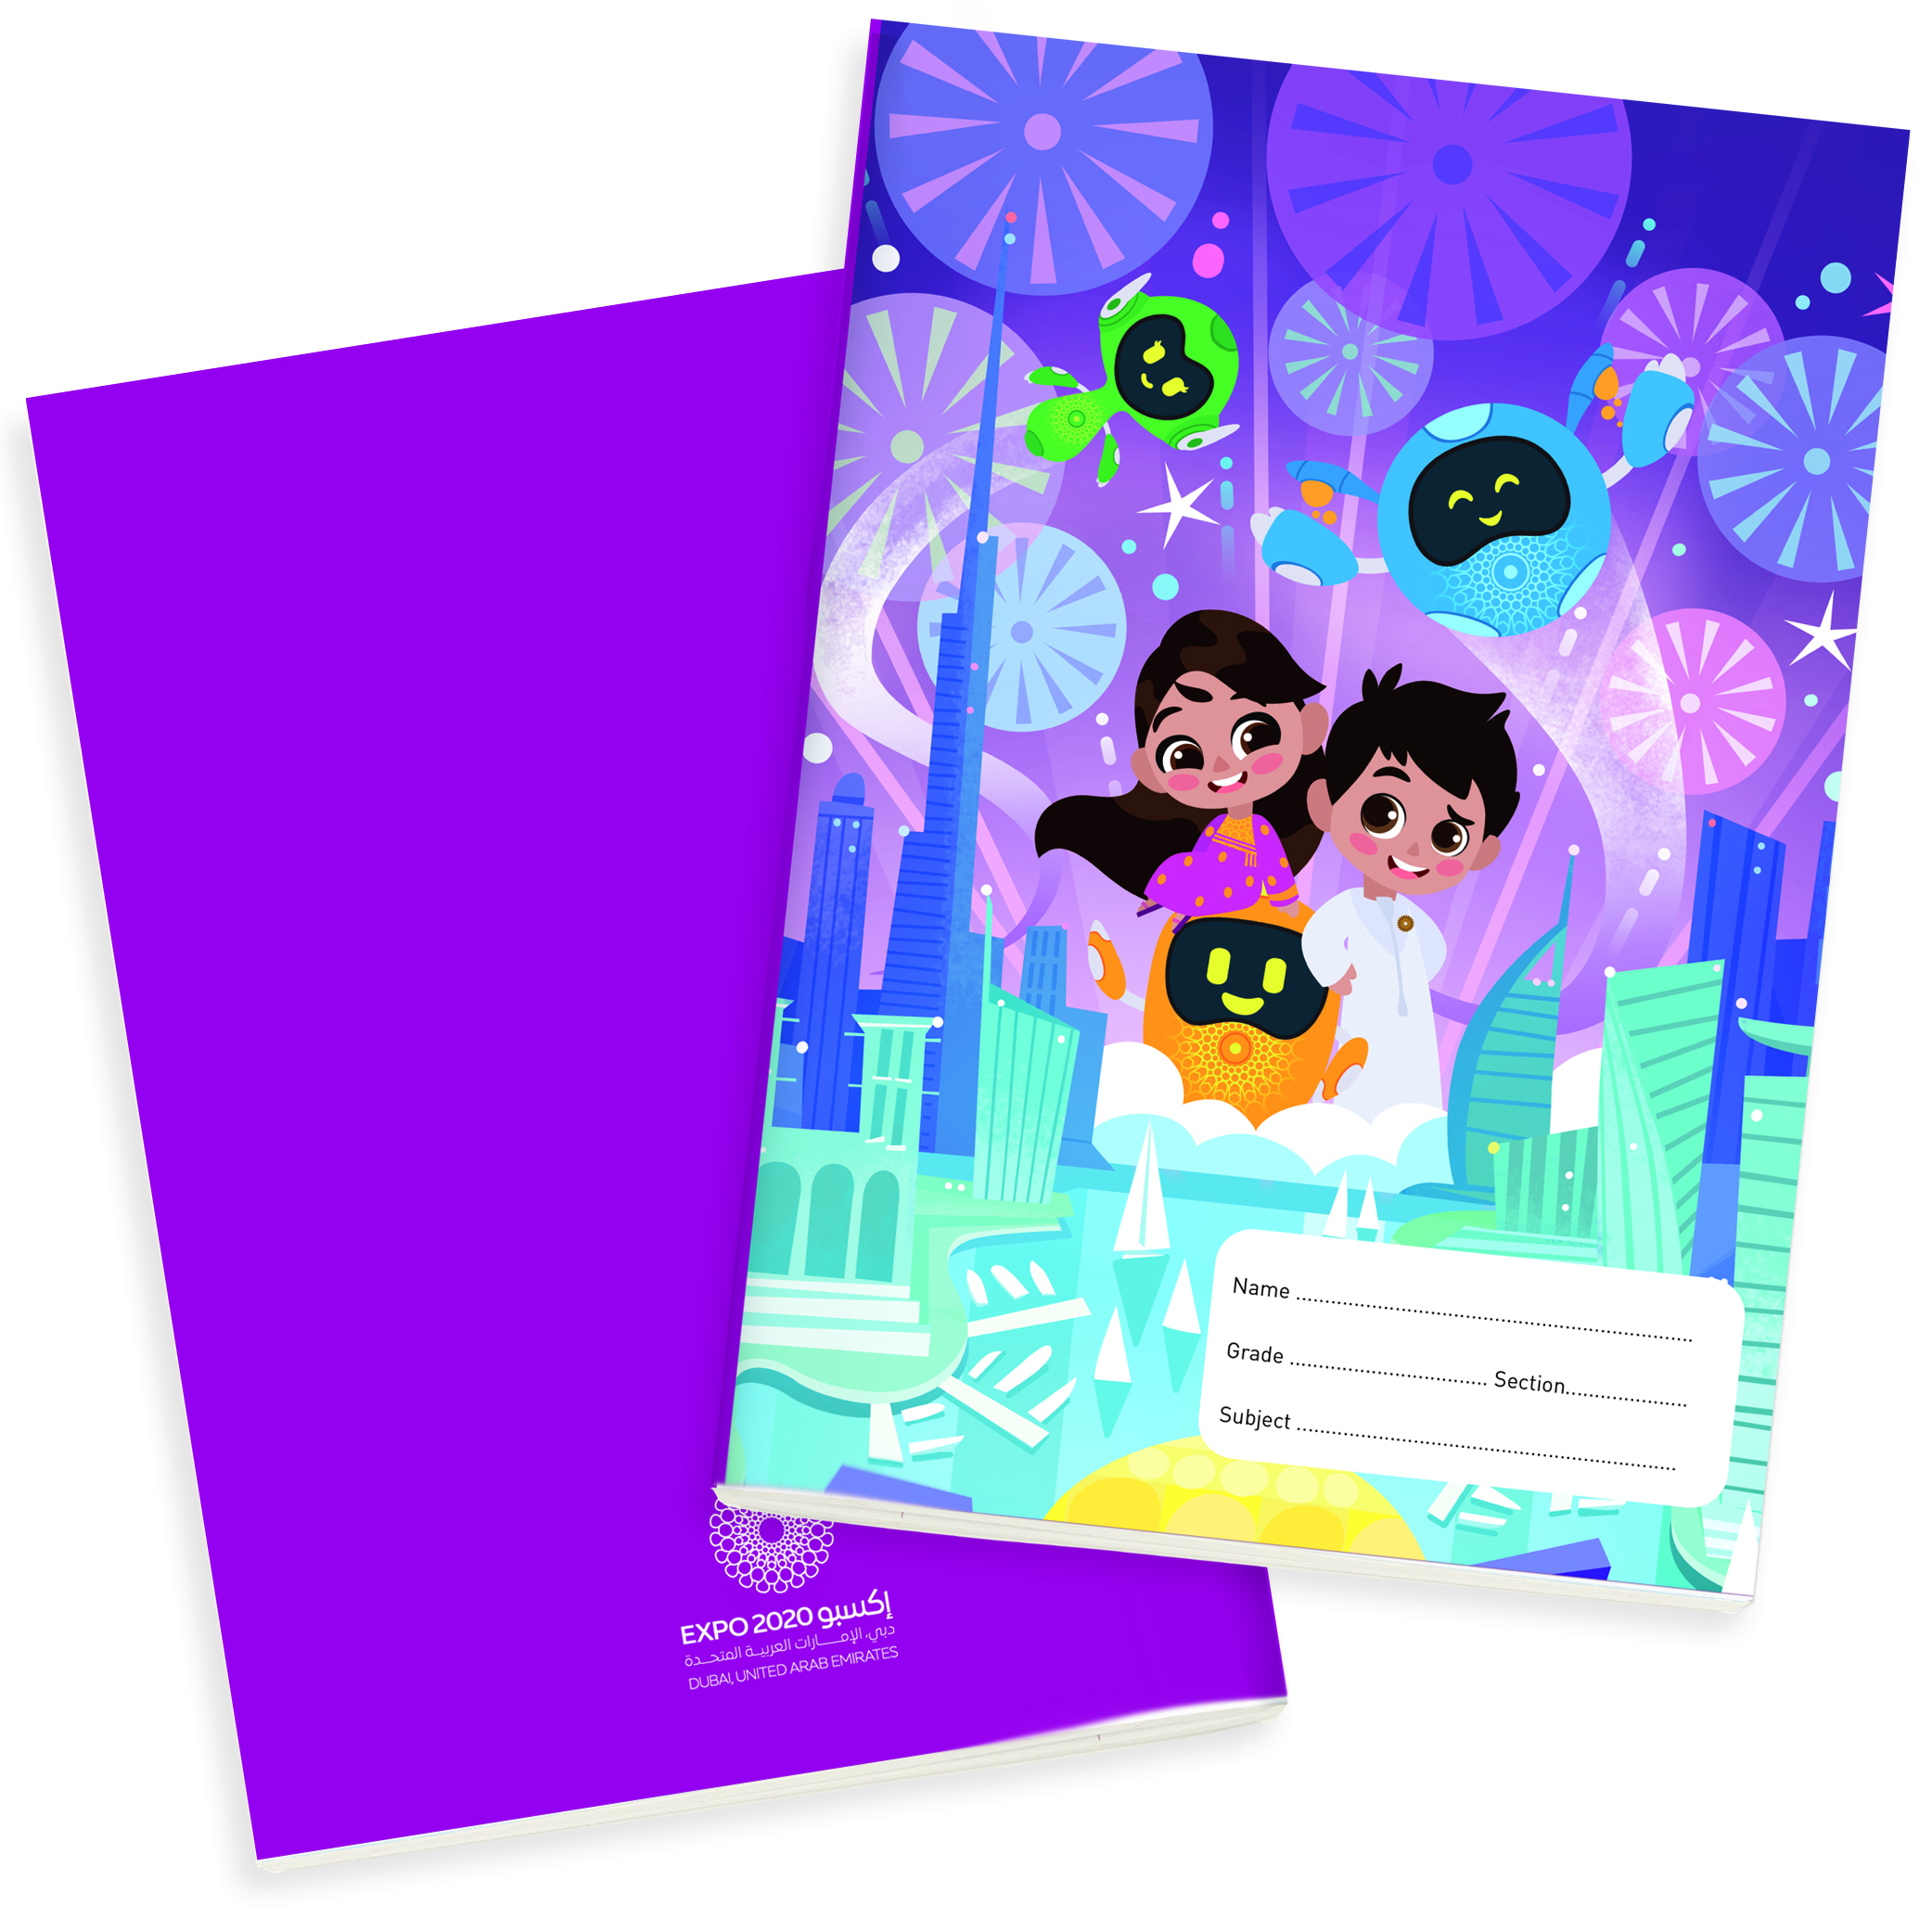 Expo 2020 Dubai Mascots On a Mission A4 Exercise Books Pack of 4 - 64 Pages